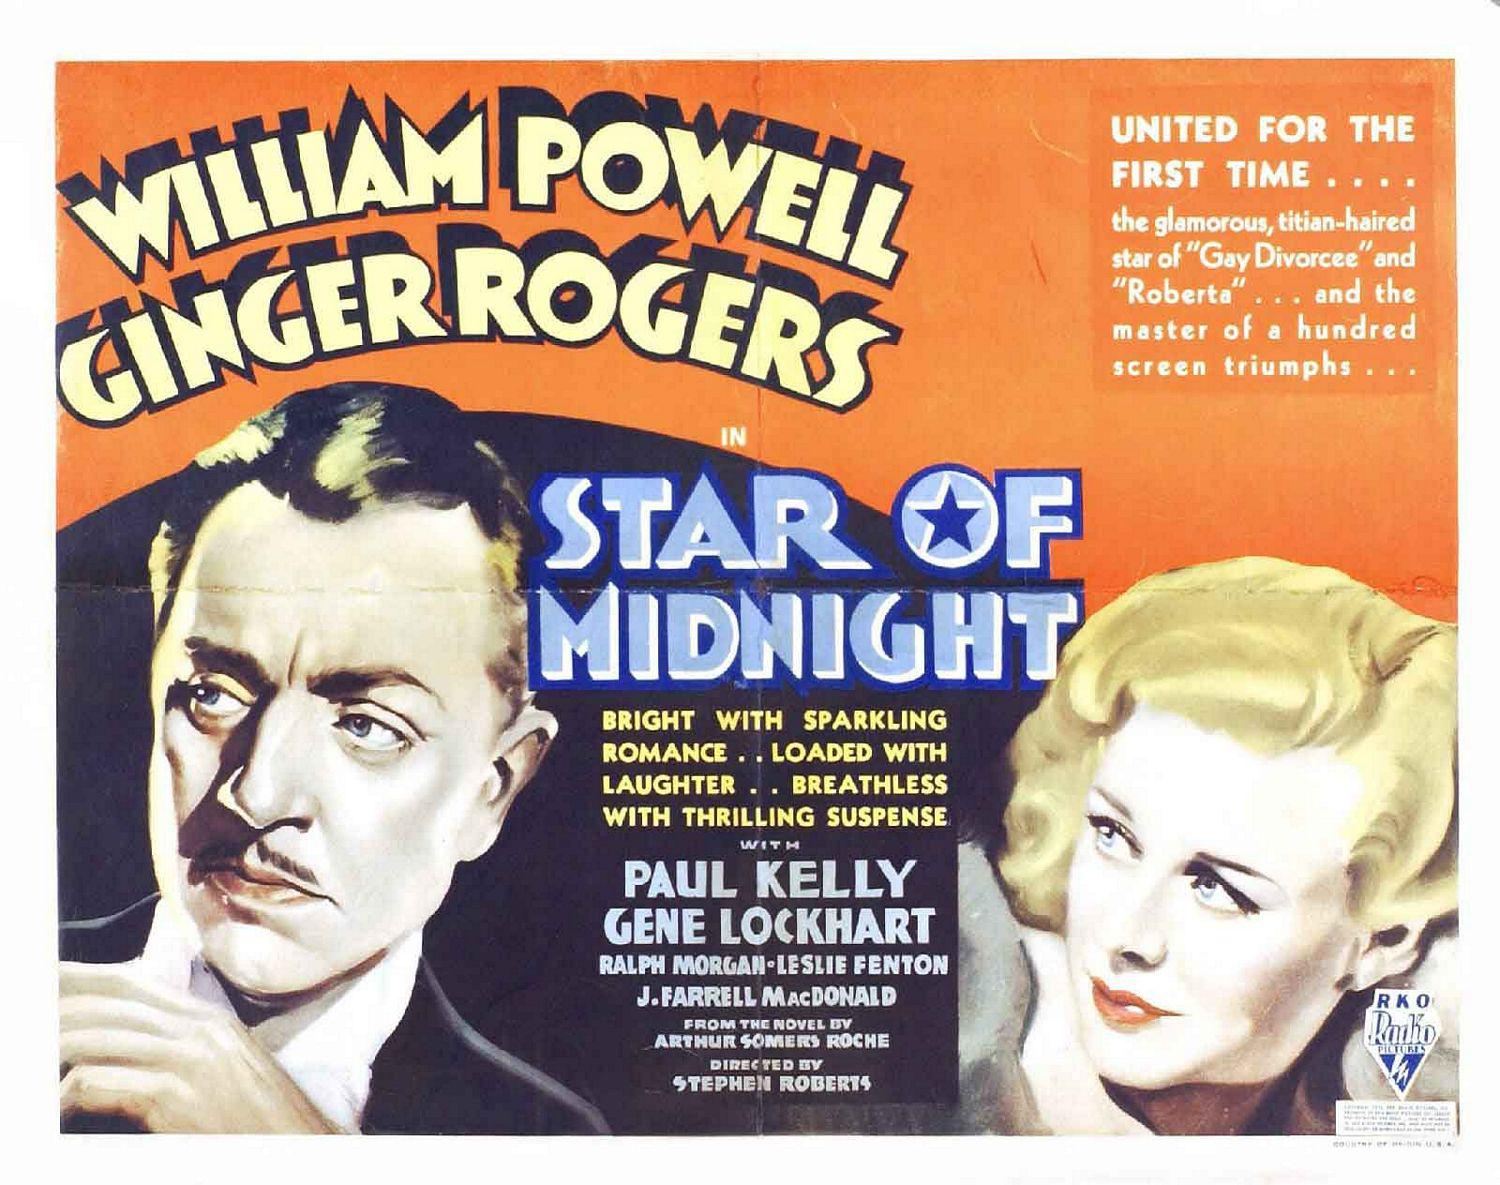 Star of Midnight - old classic film poster - William Powell - Ginger Rogers - Paul Kelly - Gene Lockhart - Ralph Morgan - Leslie Fenton - J. Farrell MacDonald